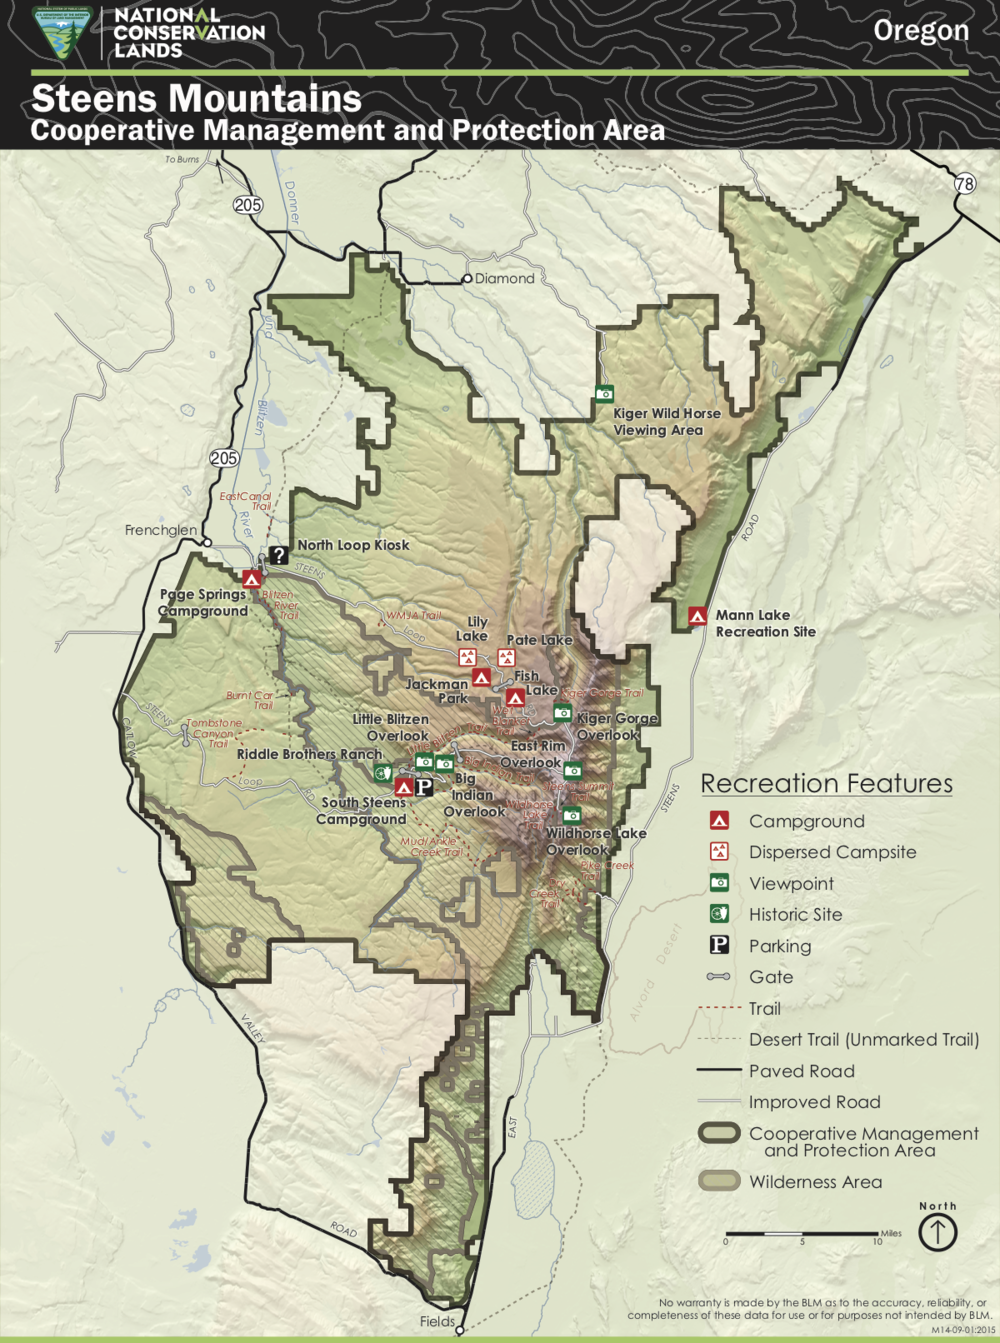 The Steens Mountain Cooperative Mangement and Protection Area. Not shown is a comparably sized area immediately to the east that was also withdrawn from mineral exploitation, which, among other threats eliminated, precludes geothermal power plants at Mickey, Alvord, Borax and other hot springs.  Source:  Bureau of Land Management